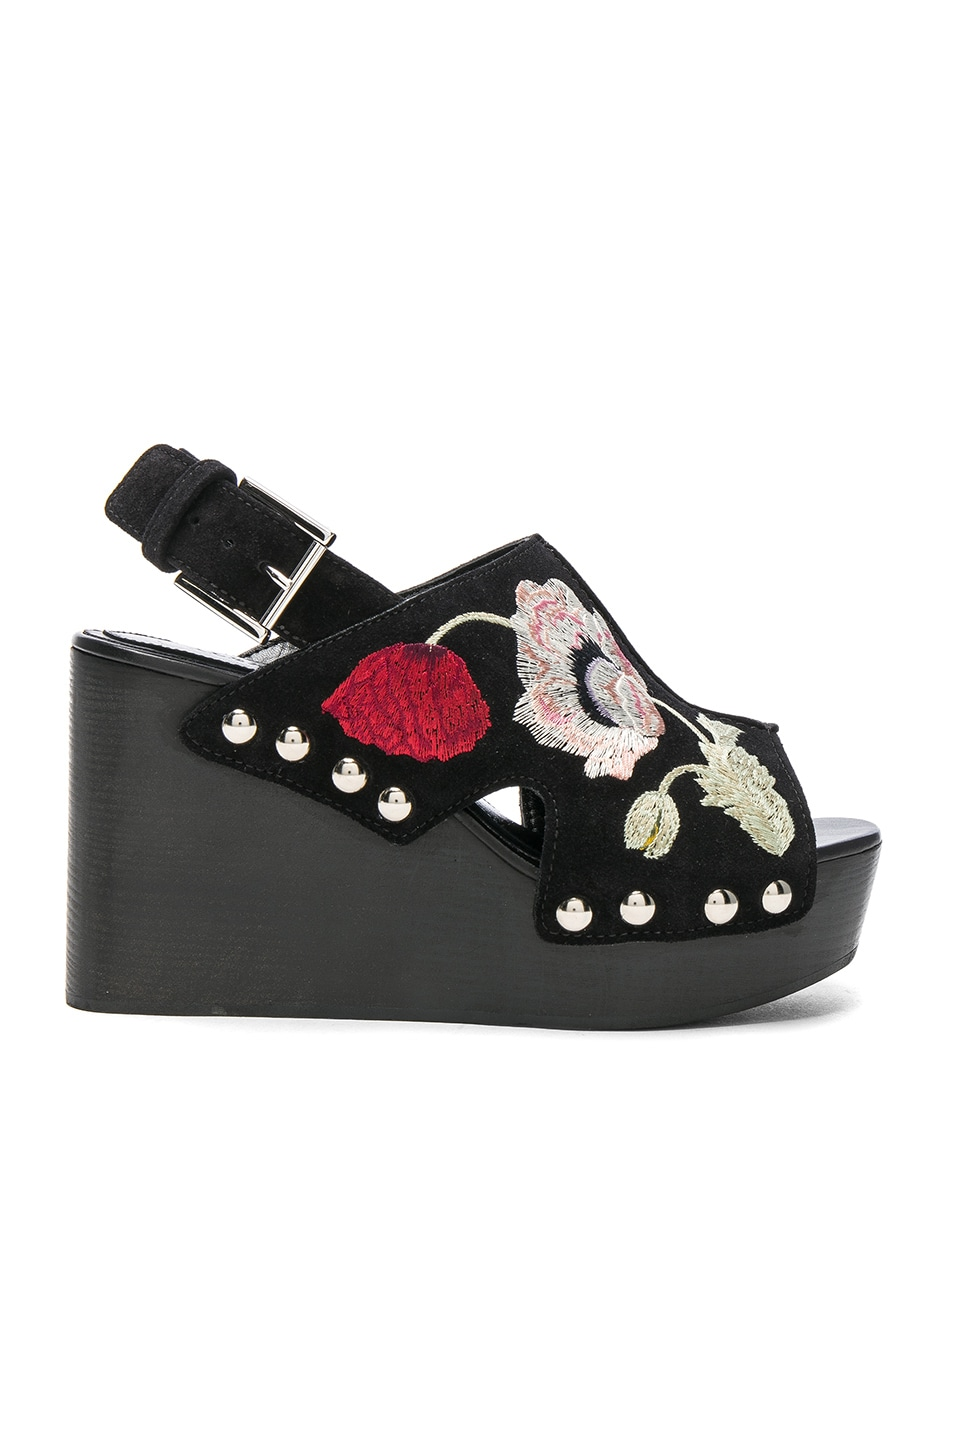 Image 1 of Alexander McQueen Suede Wedges in Black & Multi Cocktail